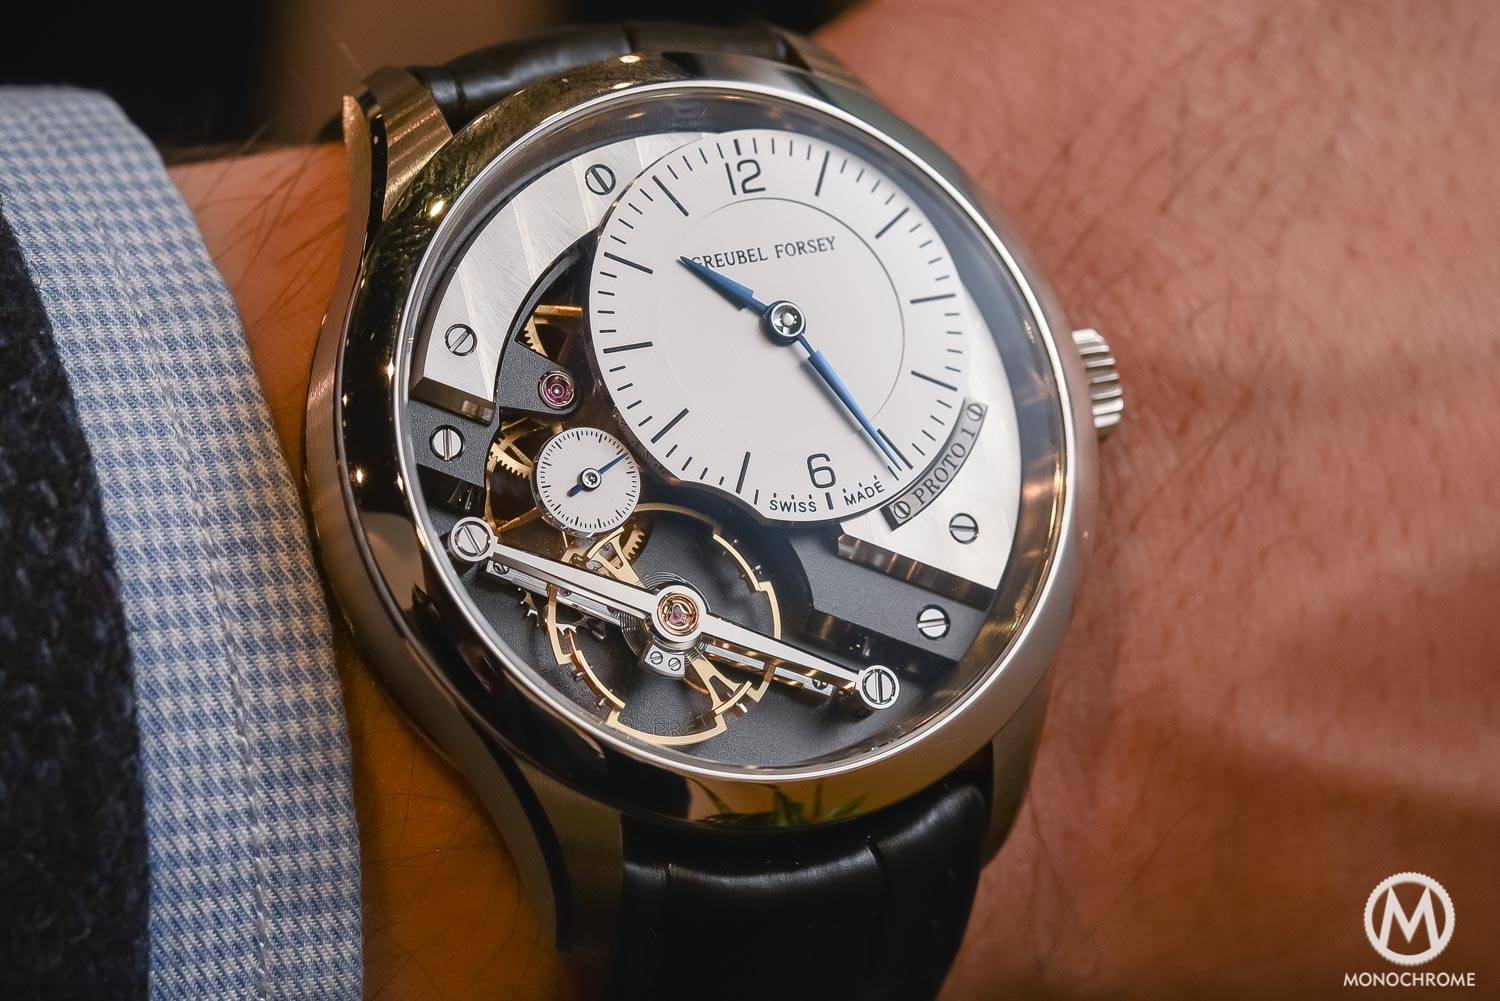 Greubel Forsey Signature 1 - Stainless steel entry level - SIHH 2016 - wristshot